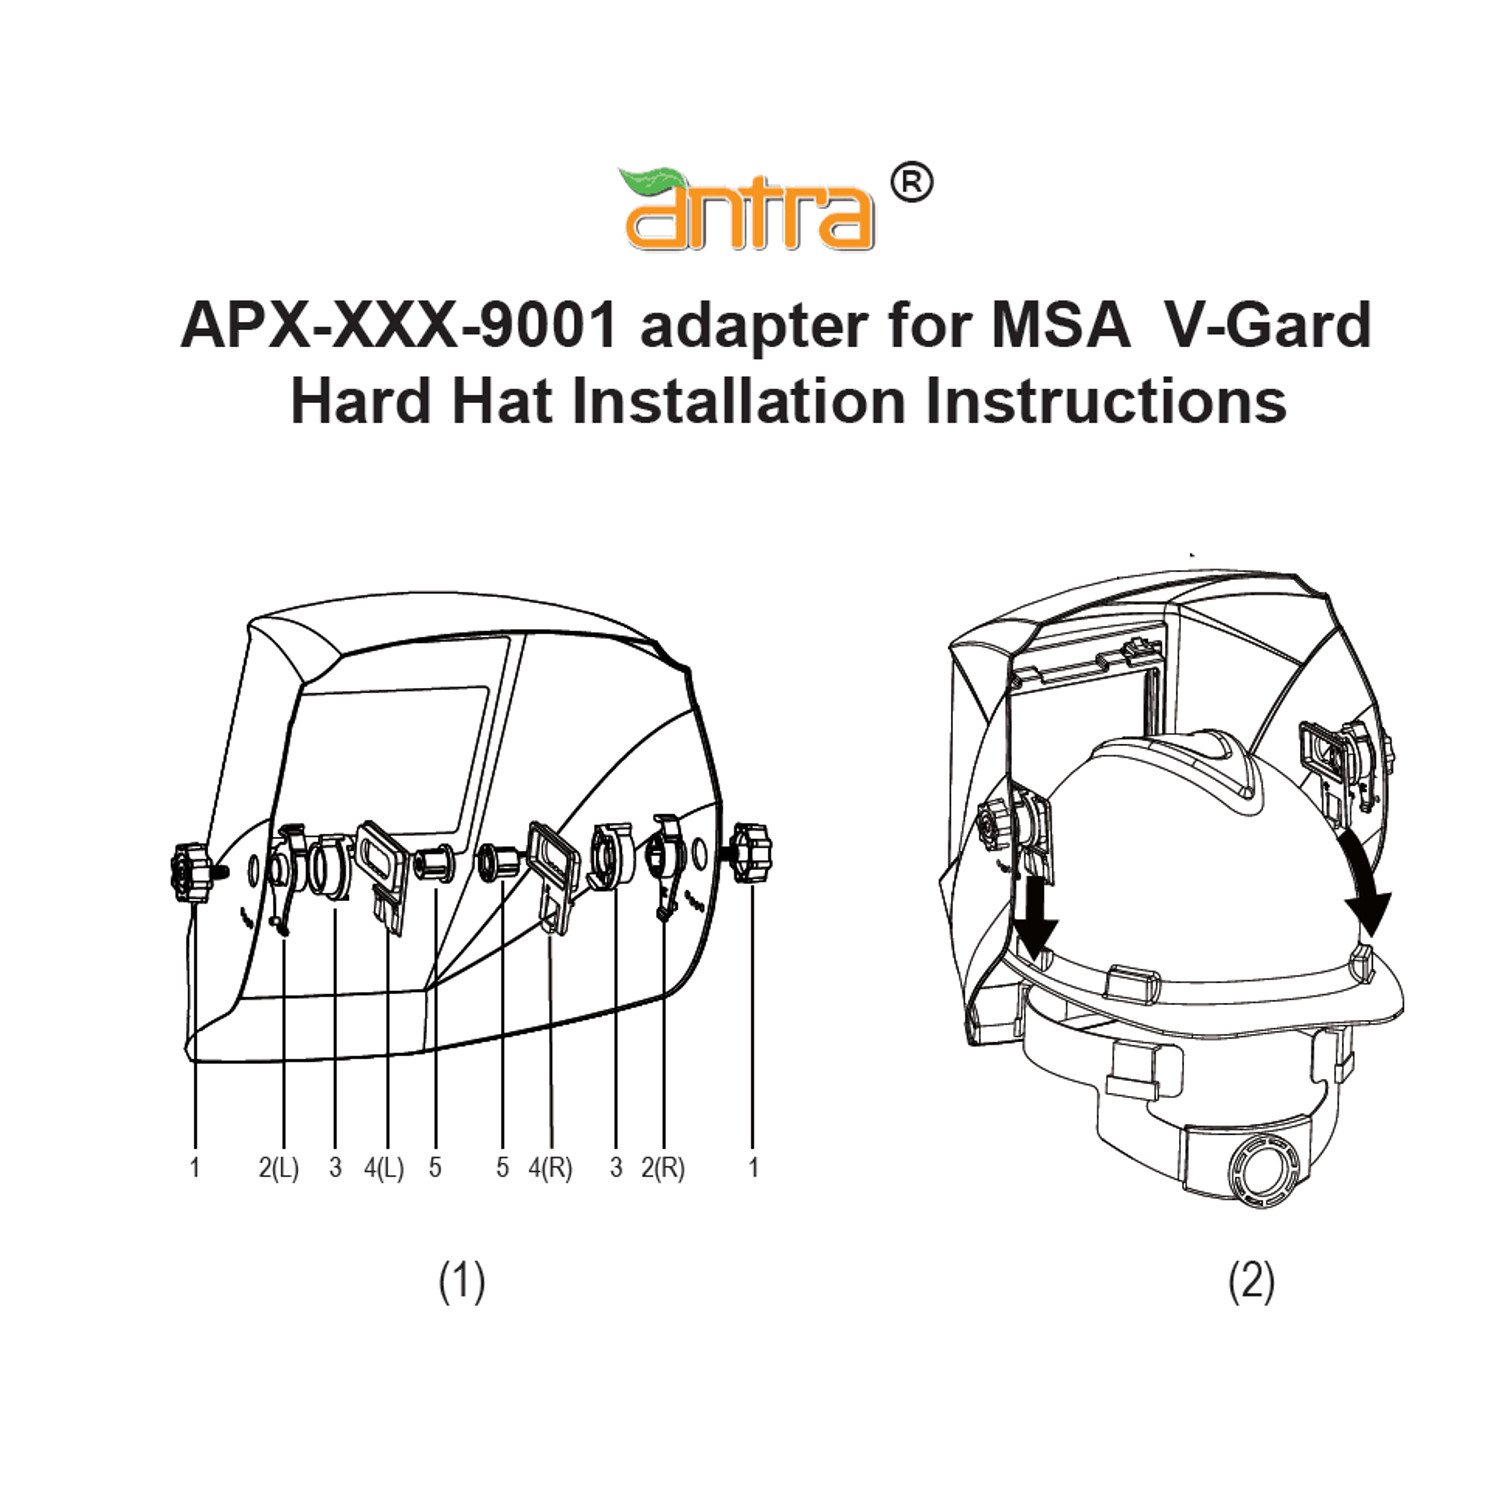 Antra APX-XXX-9001 Hard Hat Adapter Kits for connecting Welding Helmets and MSA V-Guard Cap Style: Amazon.com: Industrial & Scientific